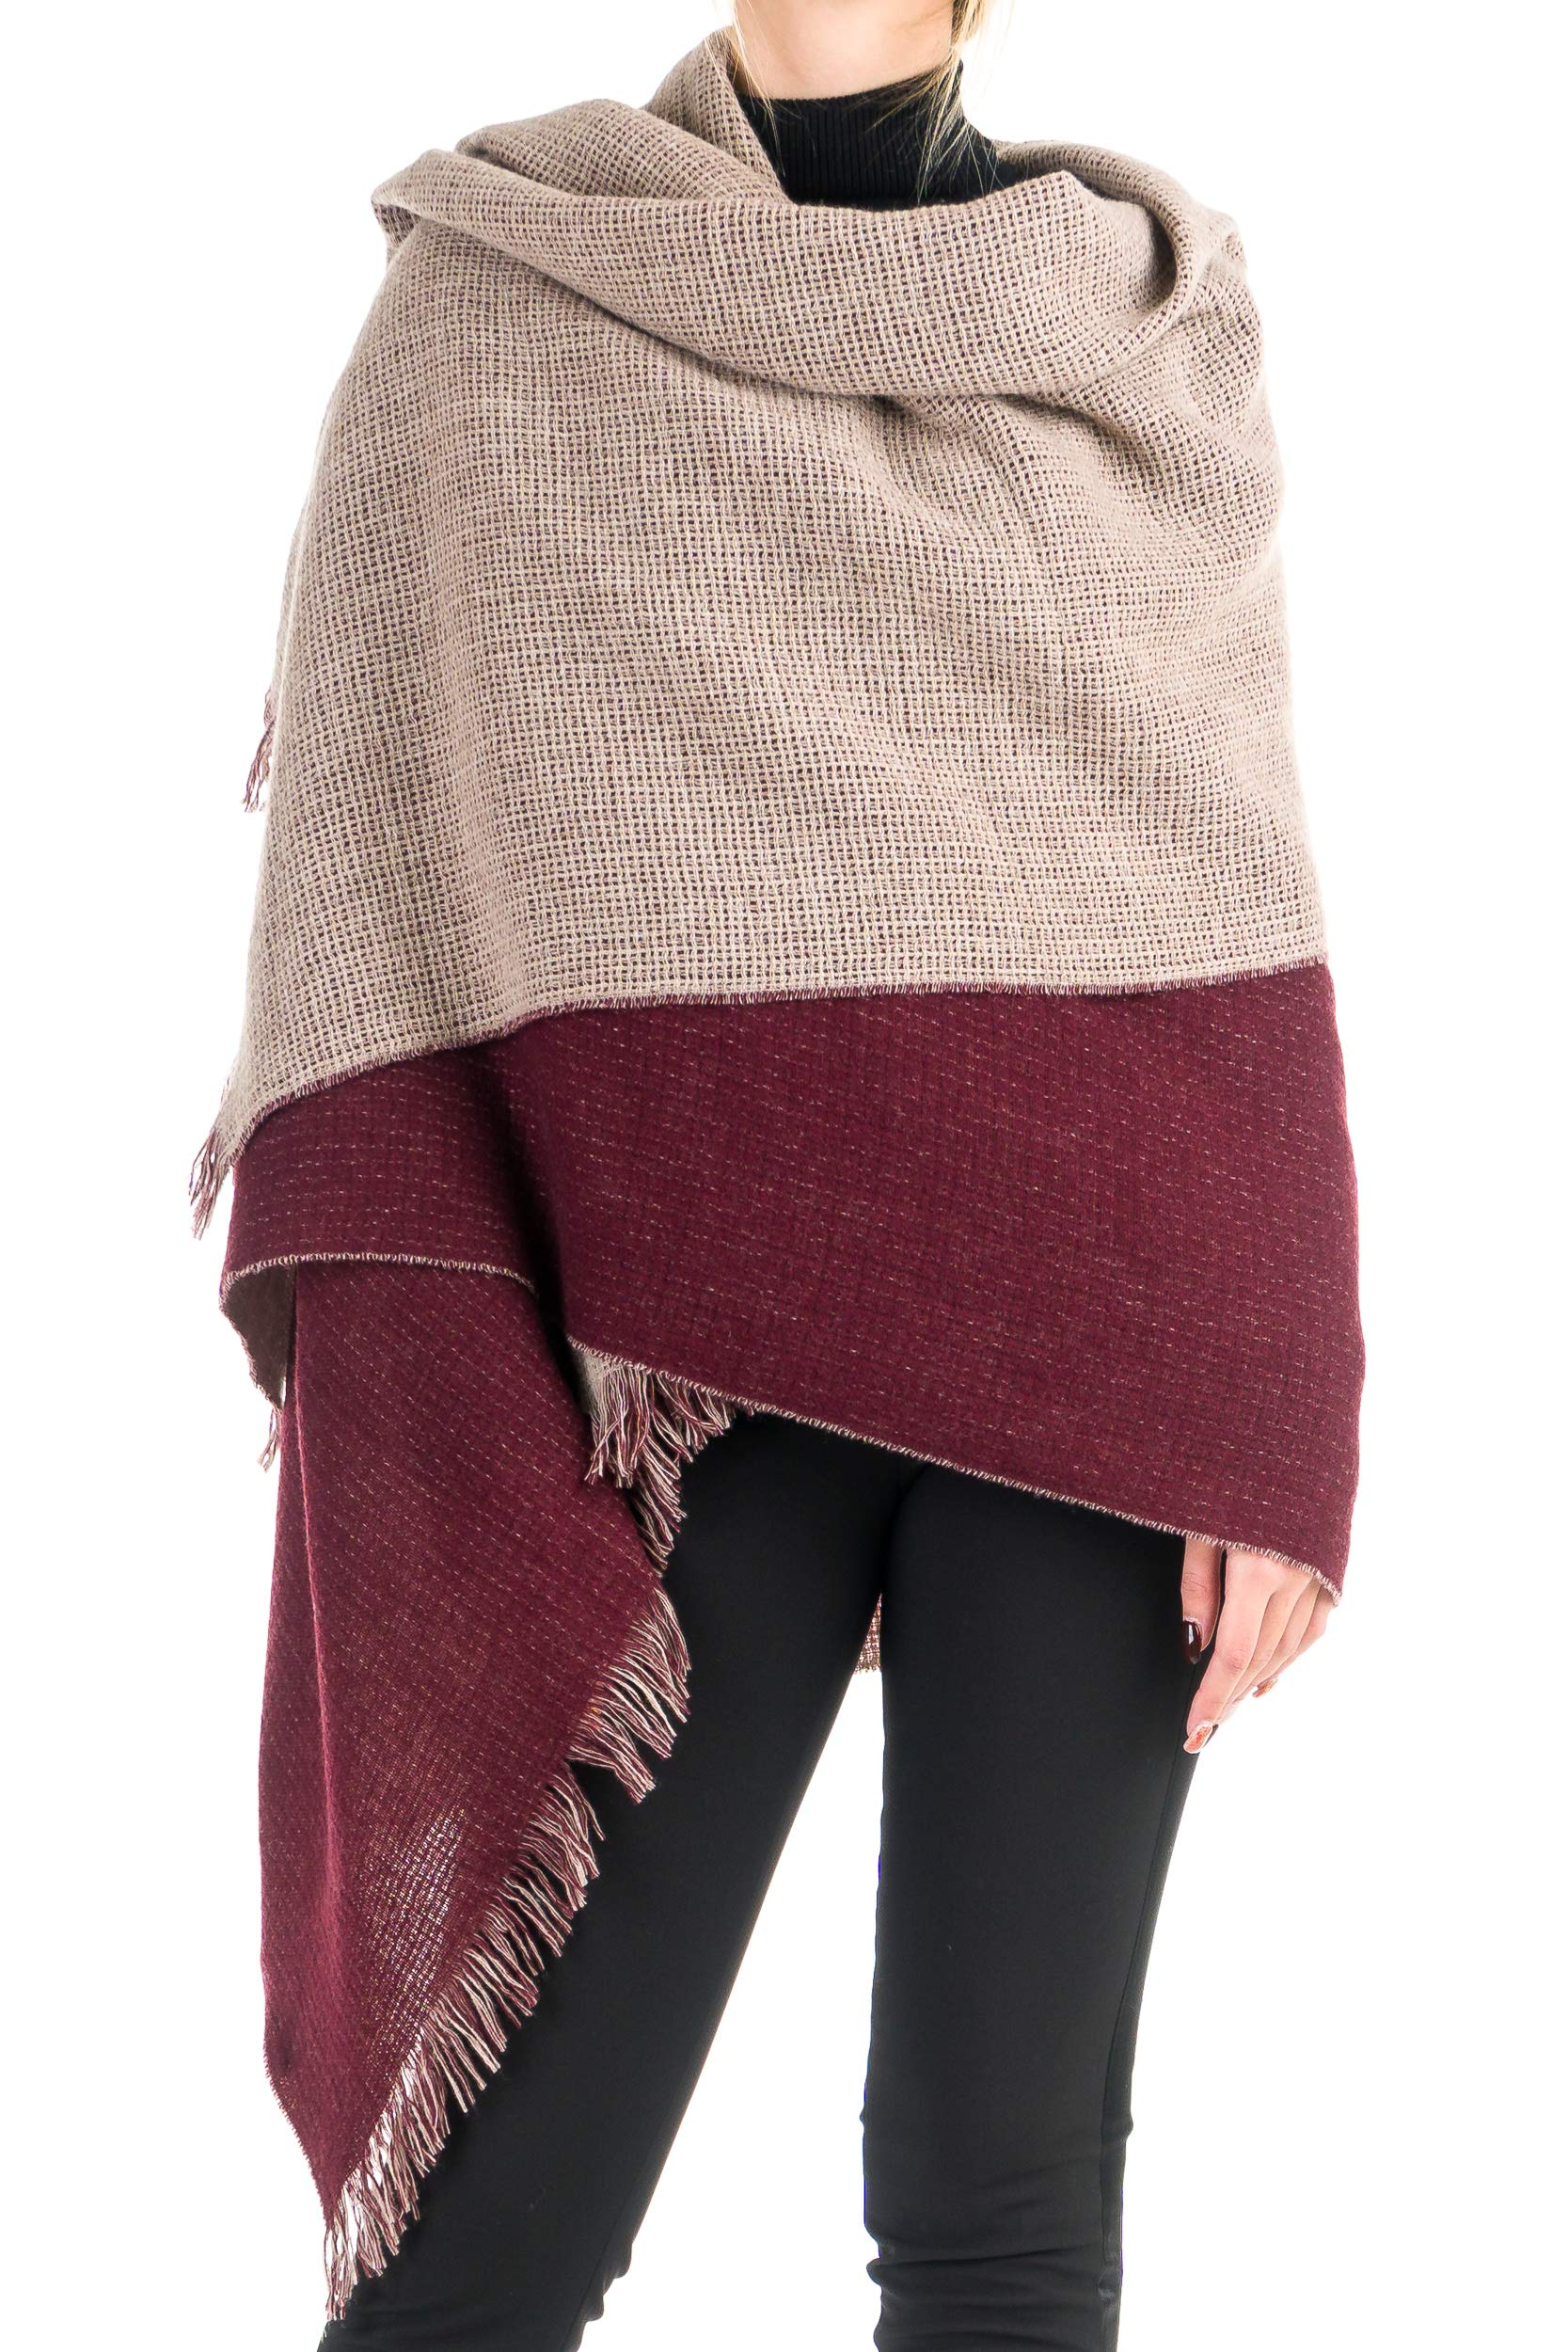 Angiola Made In Italy – Women's Winter Double Faced 100% Virgin Wool Scarf 100% Made In Italy – Soft, Warm (Beige, Bordeaux)